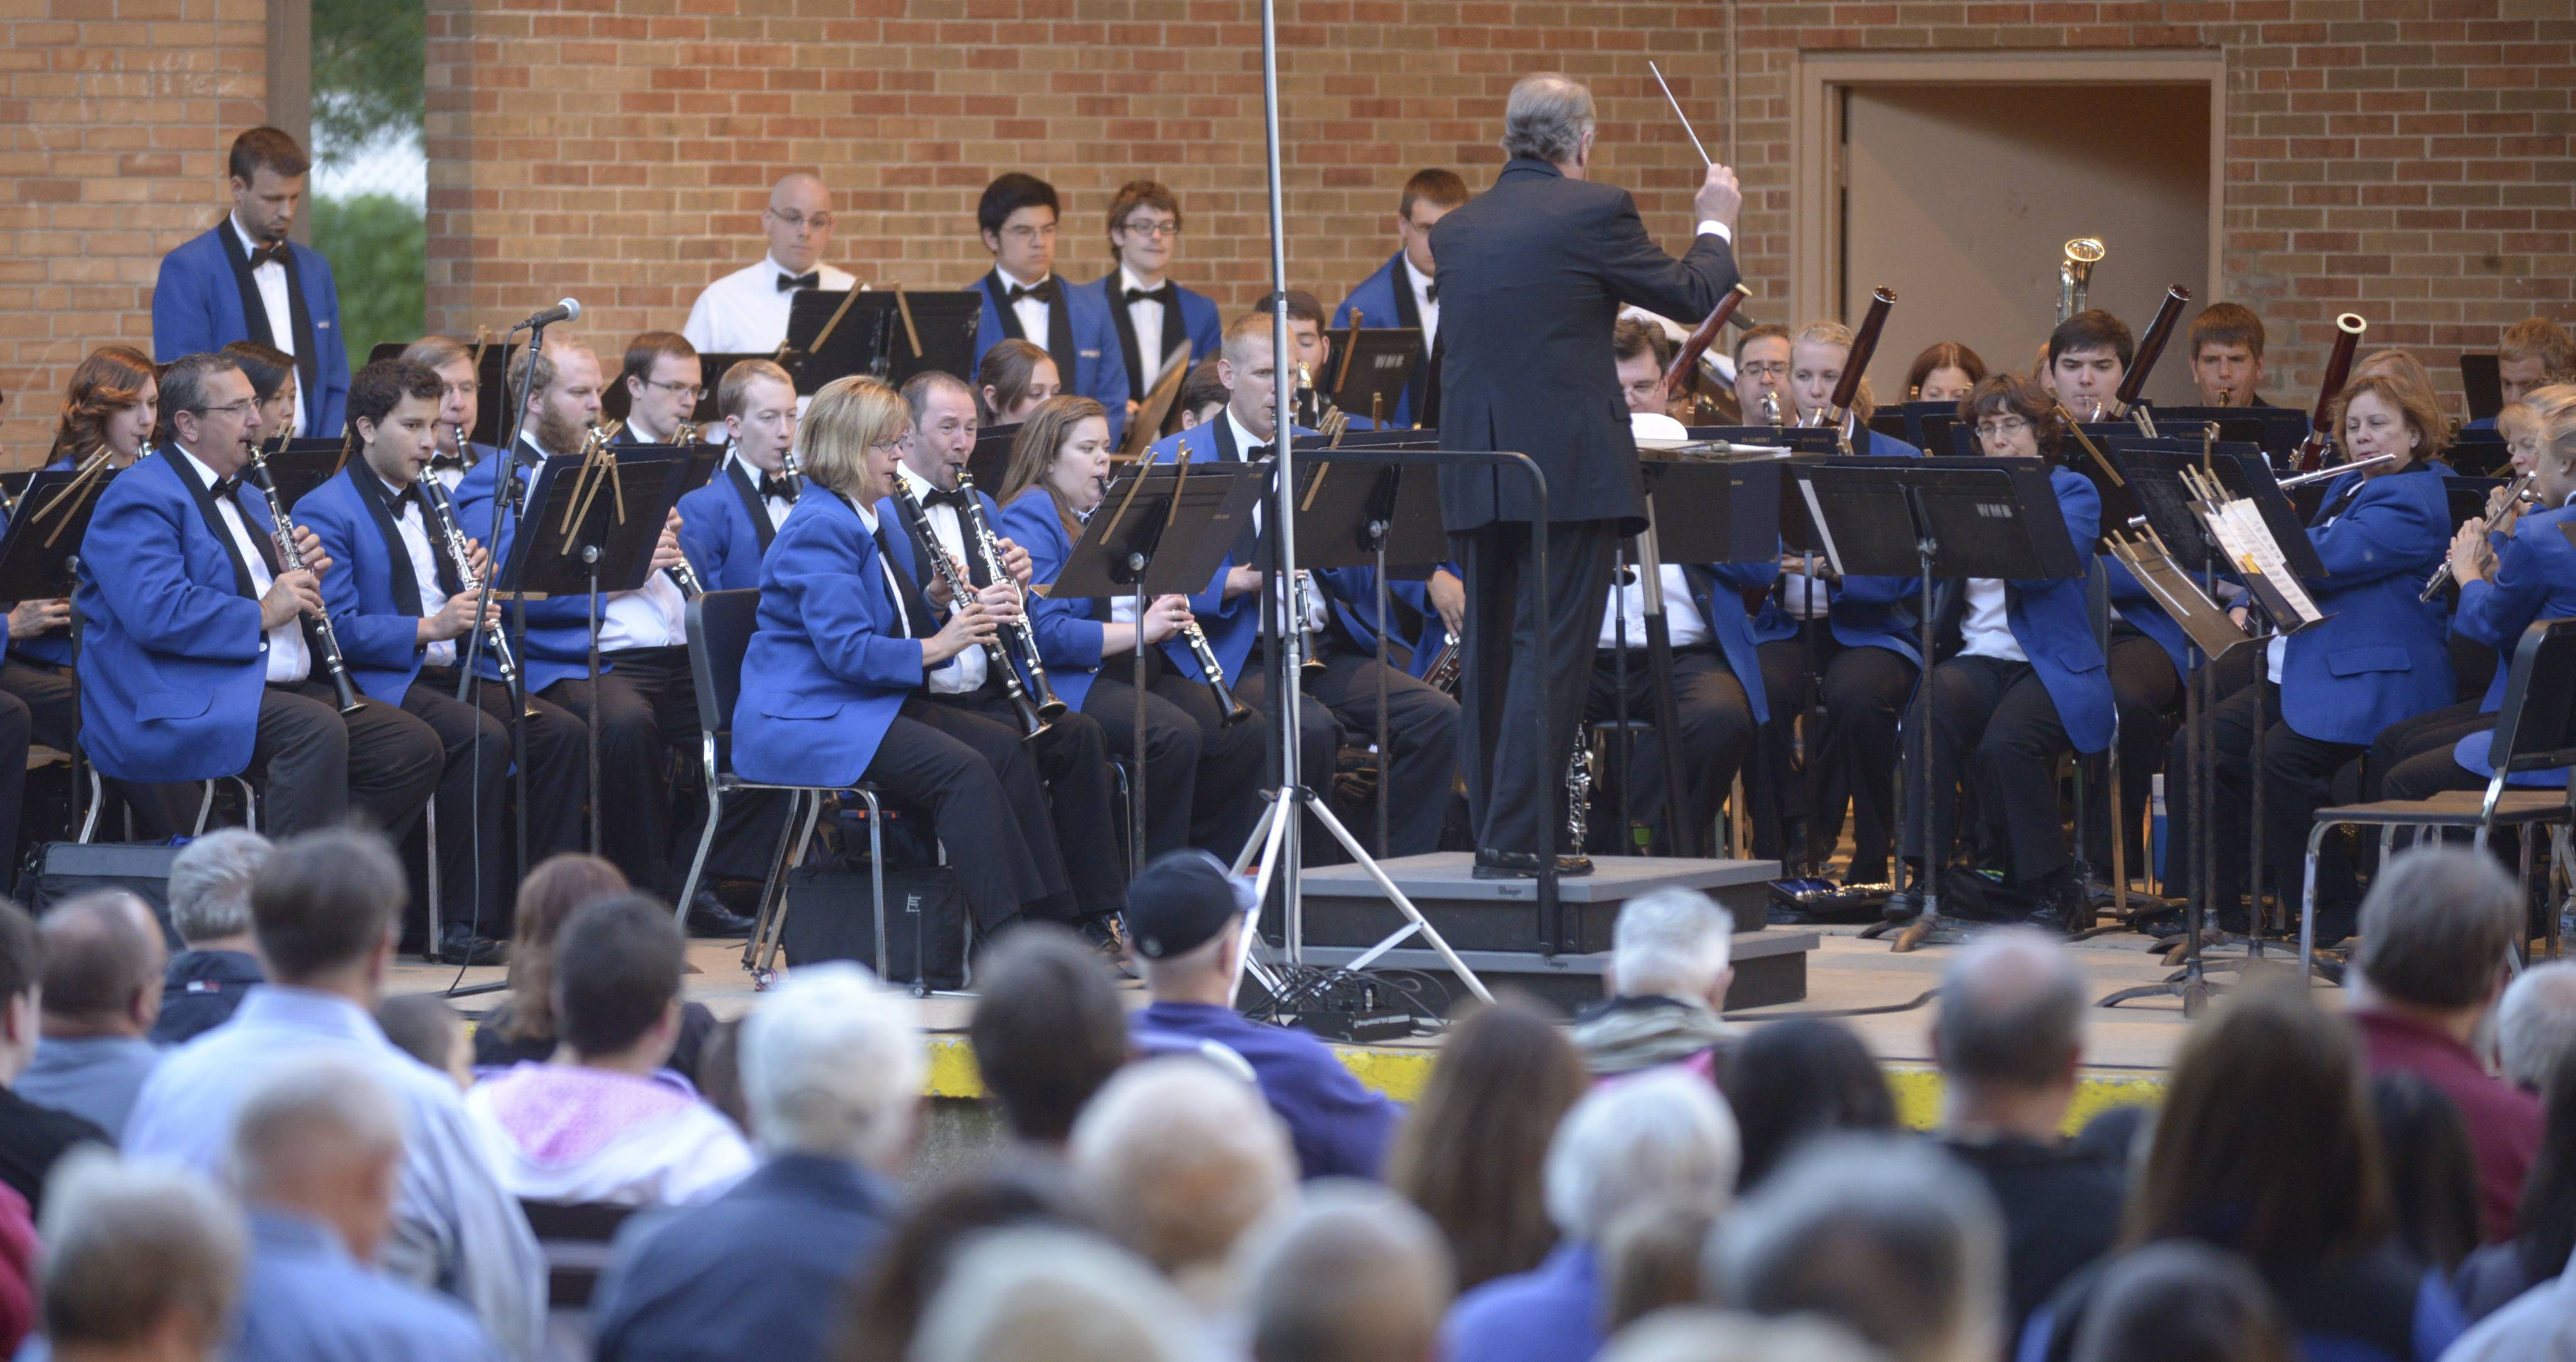 Dr. Bruce Moss conducts the Wheaton Municipal Band as they kick off their 2014 summer season at Memorial Park in Wheaton Thursday evening.